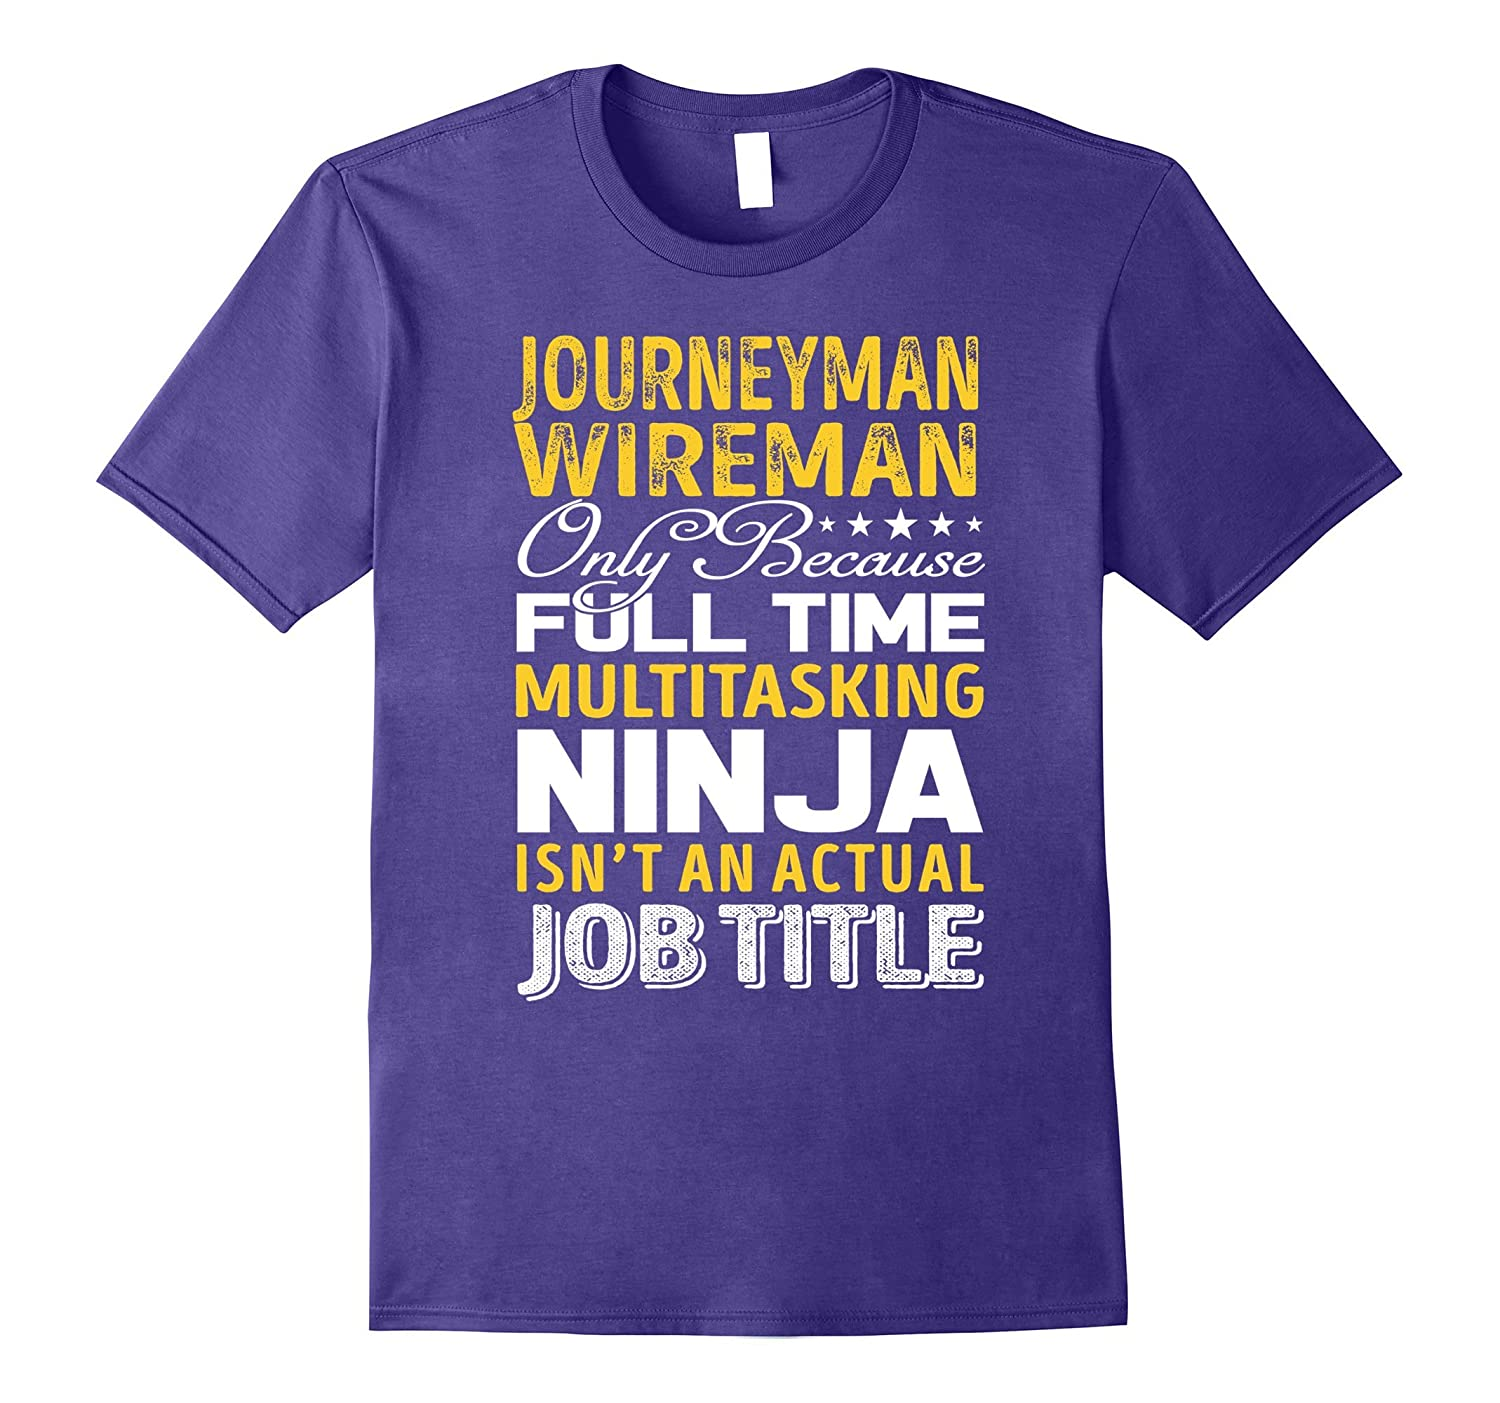 Journeyman Wireman Is Not An Actual Job Title TShirt-TJ